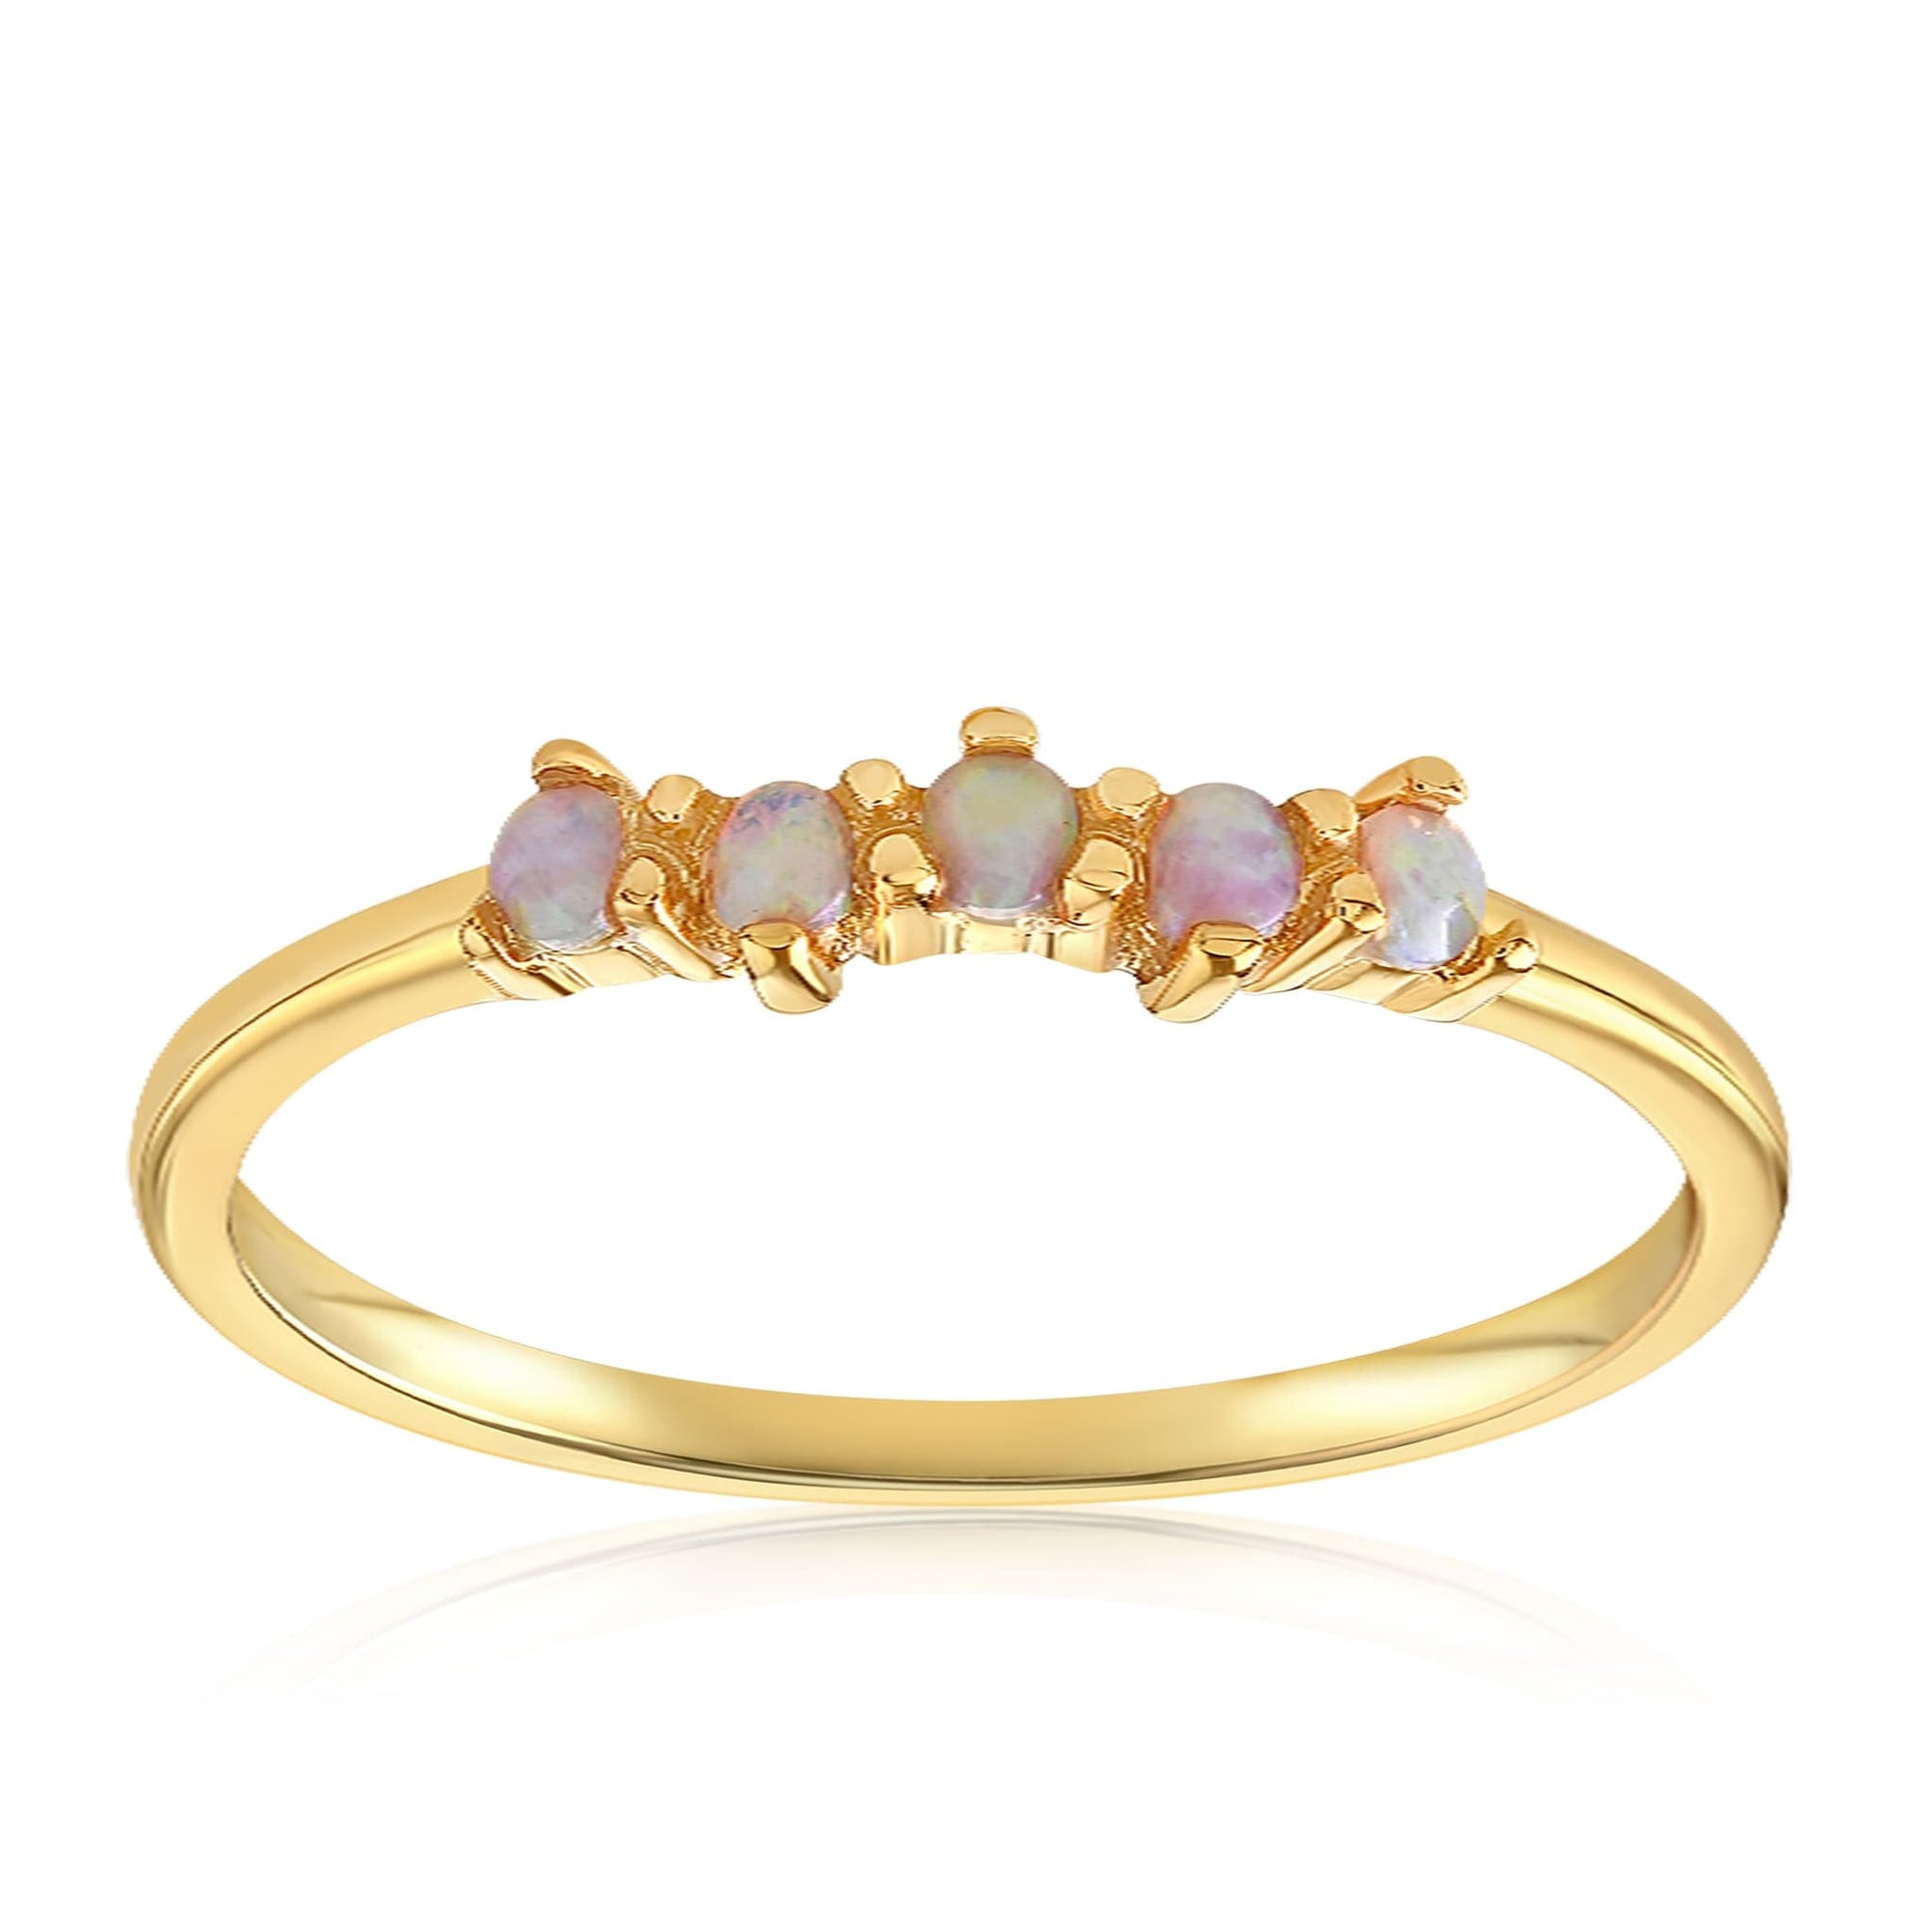 Samantha Simple Dots 5 Opal Ring - Front View Facing Up - 18K Yellow Gold Vermeil Featured